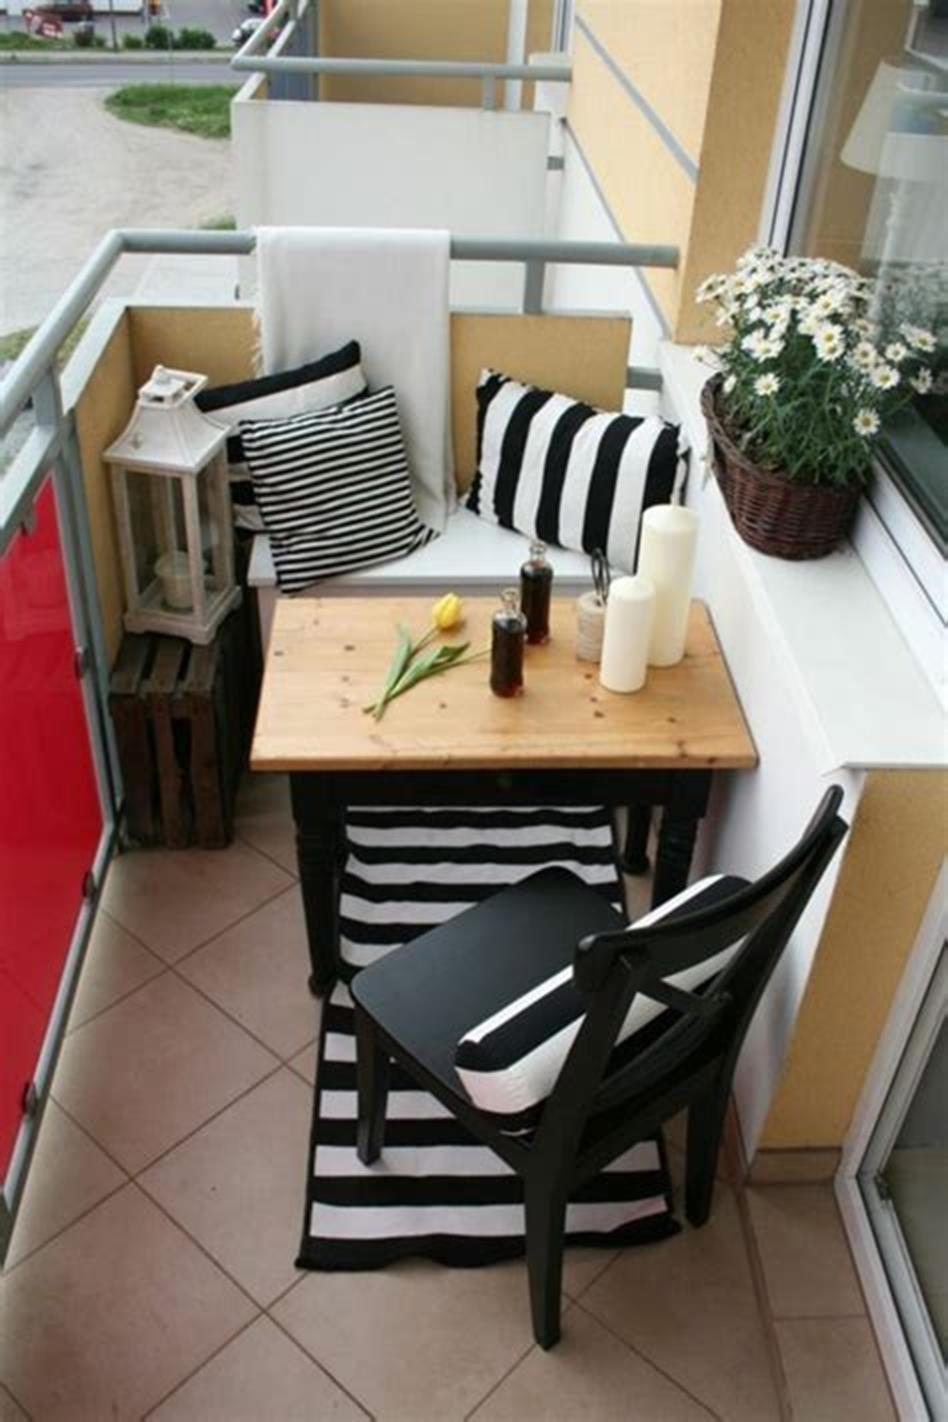 50 Amazing Ideas Furniture for Small Spaces Youll Love 47